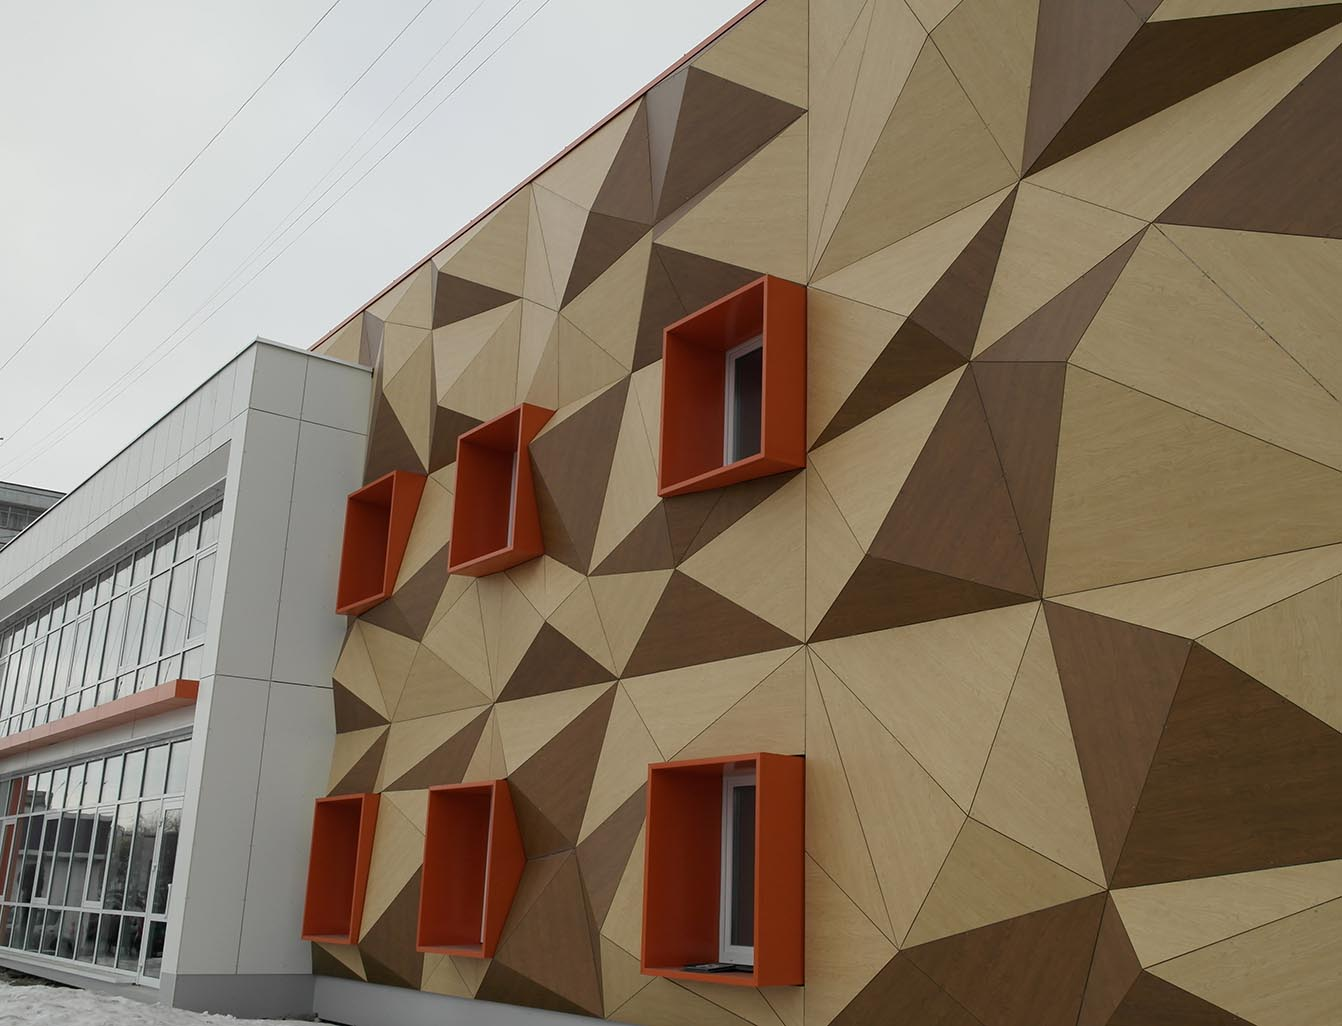 Rockpanel Exterior Cladding - Patchwork